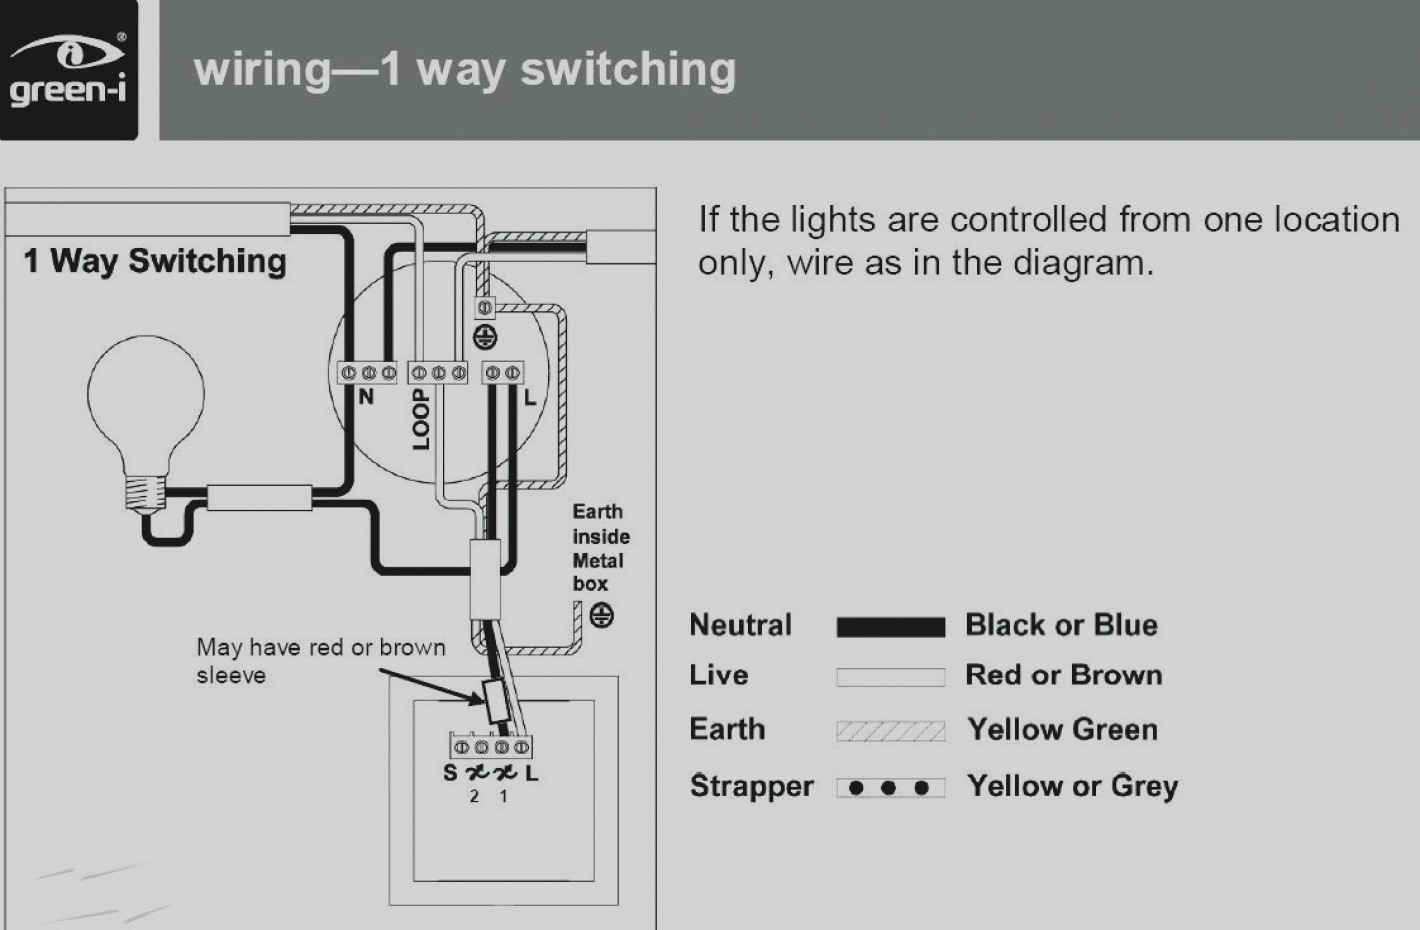 Leviton Double 3 Way Switch Wiring Diagram | Wiring Library - Leviton Decora 3 Way Switch Wiring Diagram 5603